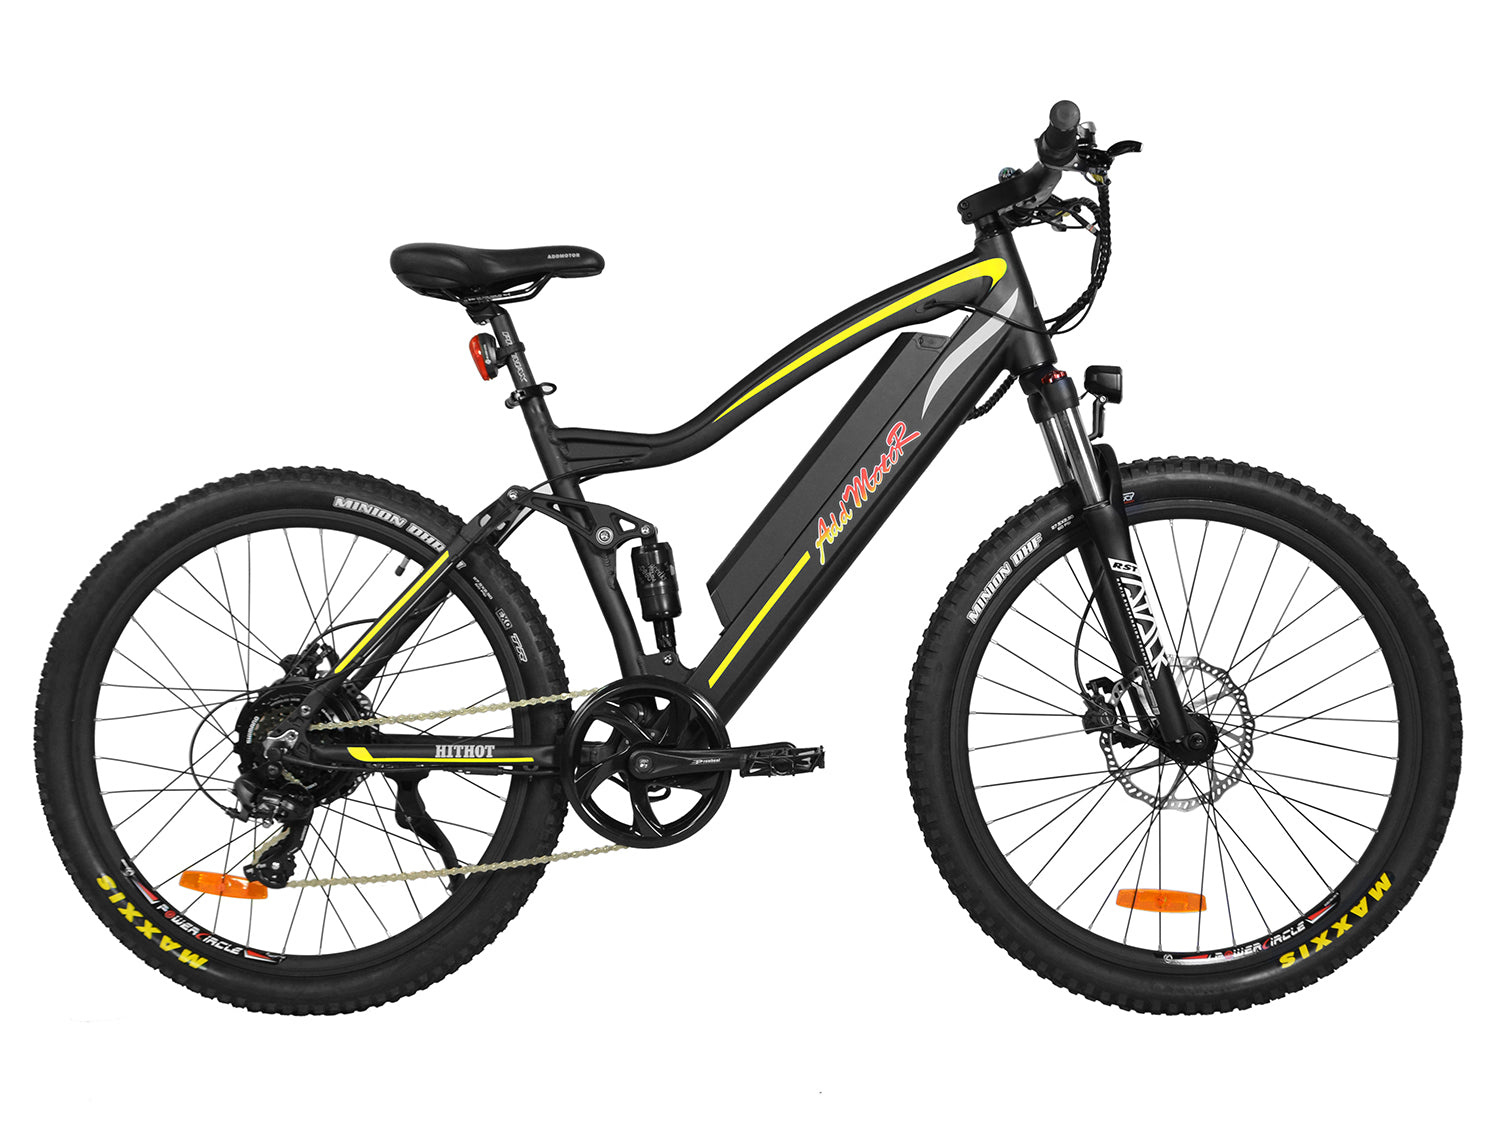 Addmotor HITHOT H1 Platinum Electric Mountain Bike - Electric Bike & Skate